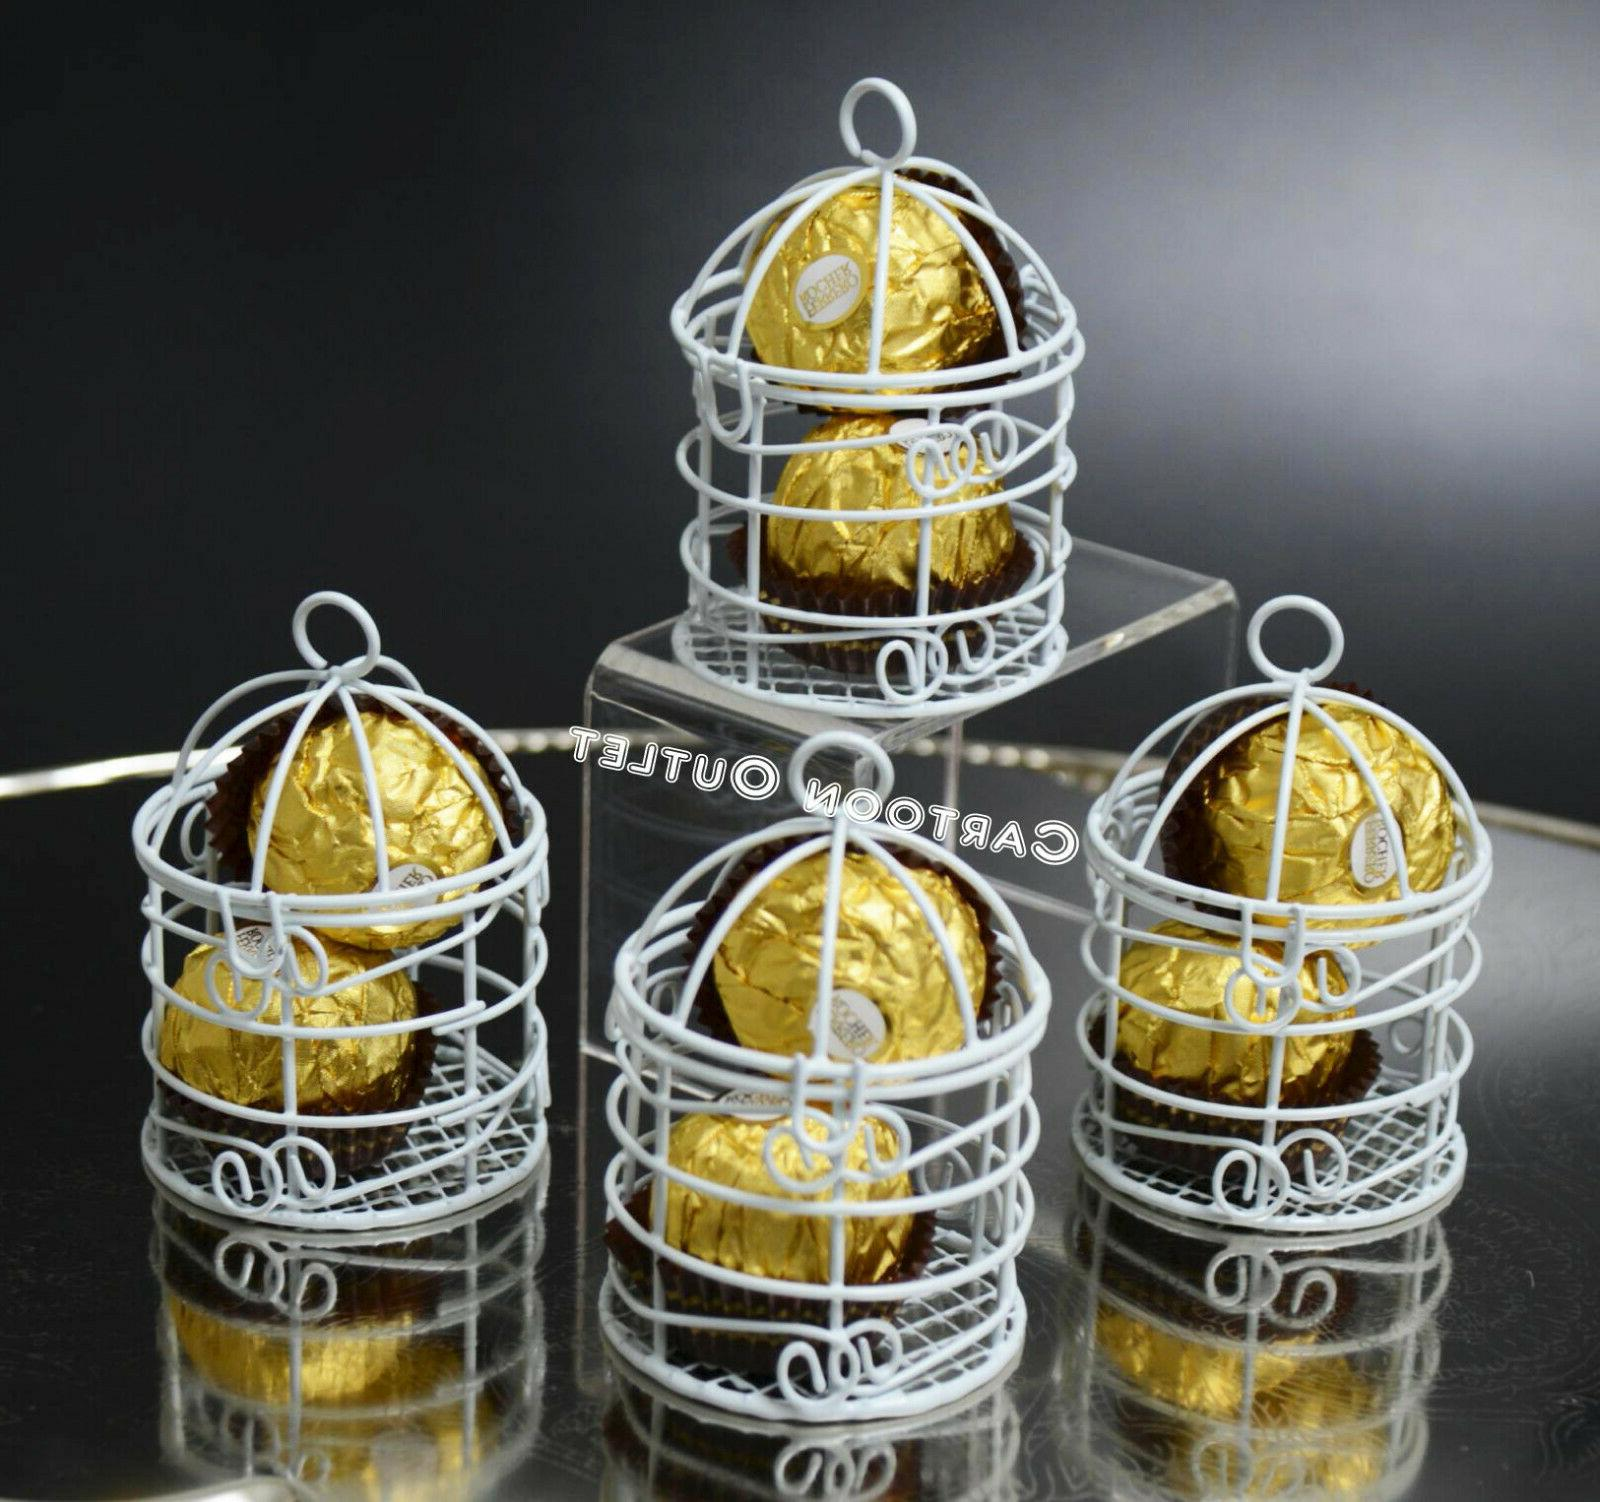 12 WEDDING QUINCEANERA FAVORS SMALL WHITE METAL BIRD CAGES P